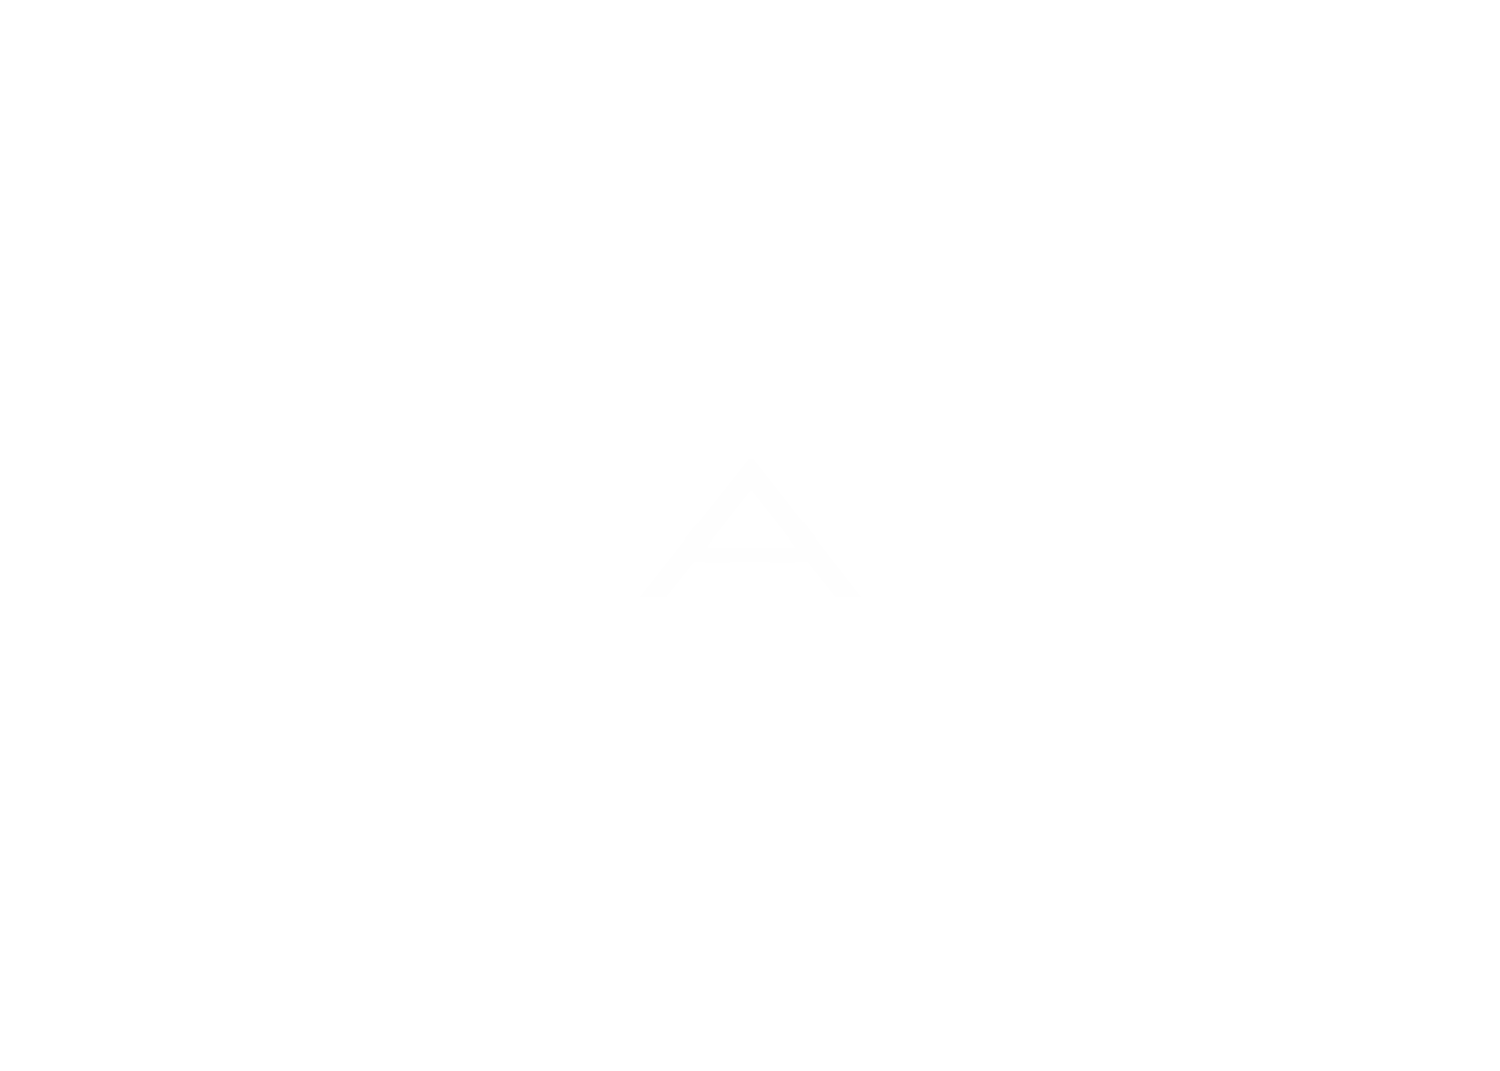 M. Andrew Barrera - Cinematographer / Director of Photography